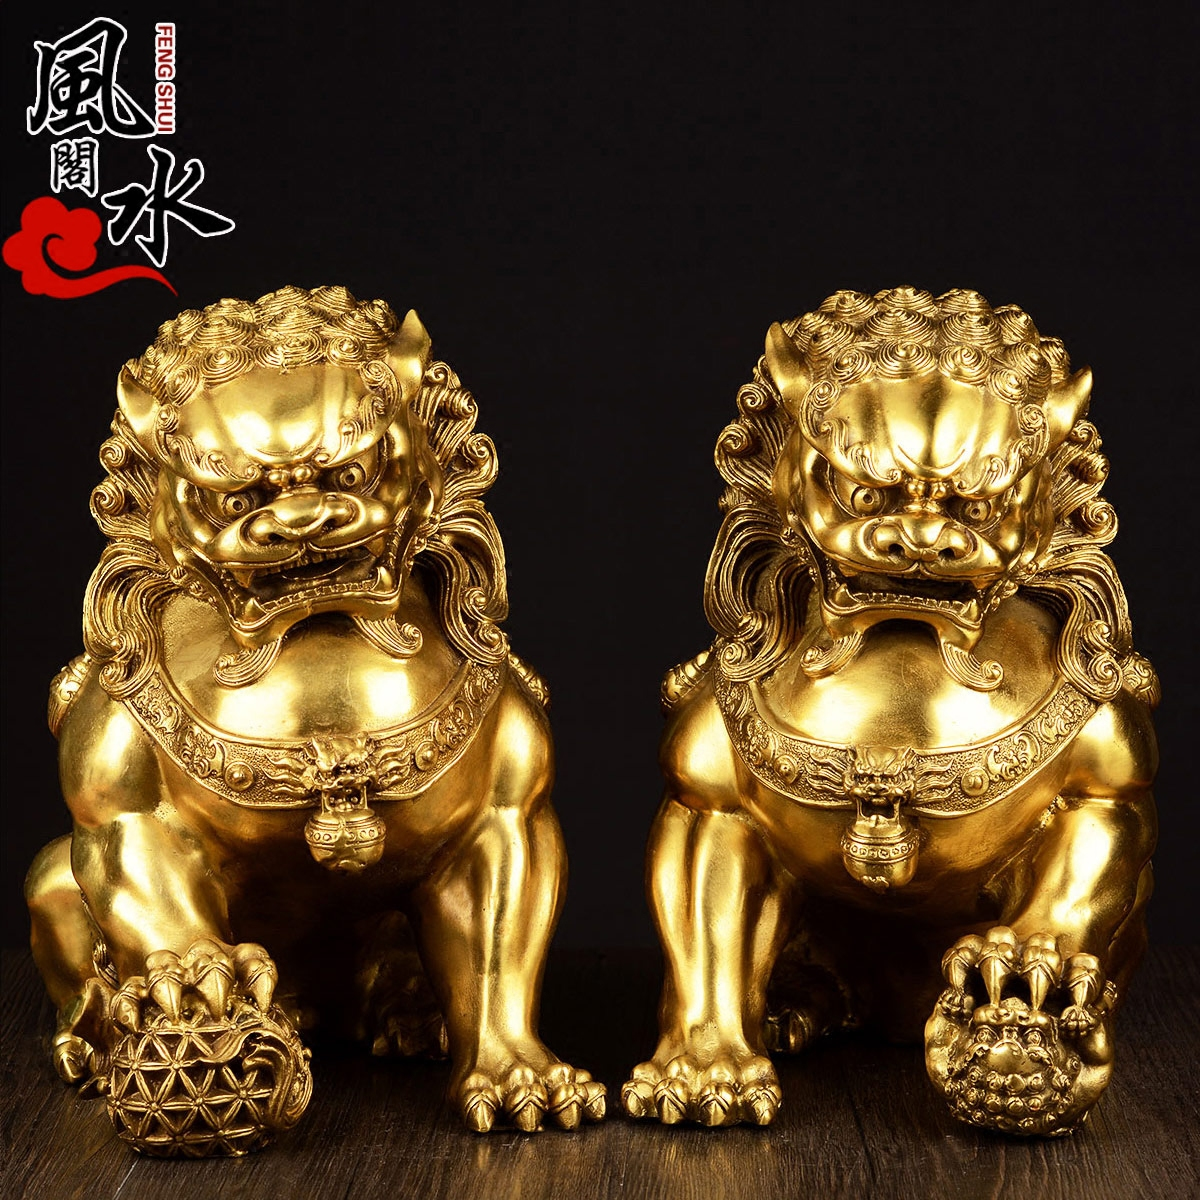 Feng shui house opening of pure copper ornaments one pair of copper beijing lion lion lion lion ornaments home feng shui ornaments to help transport